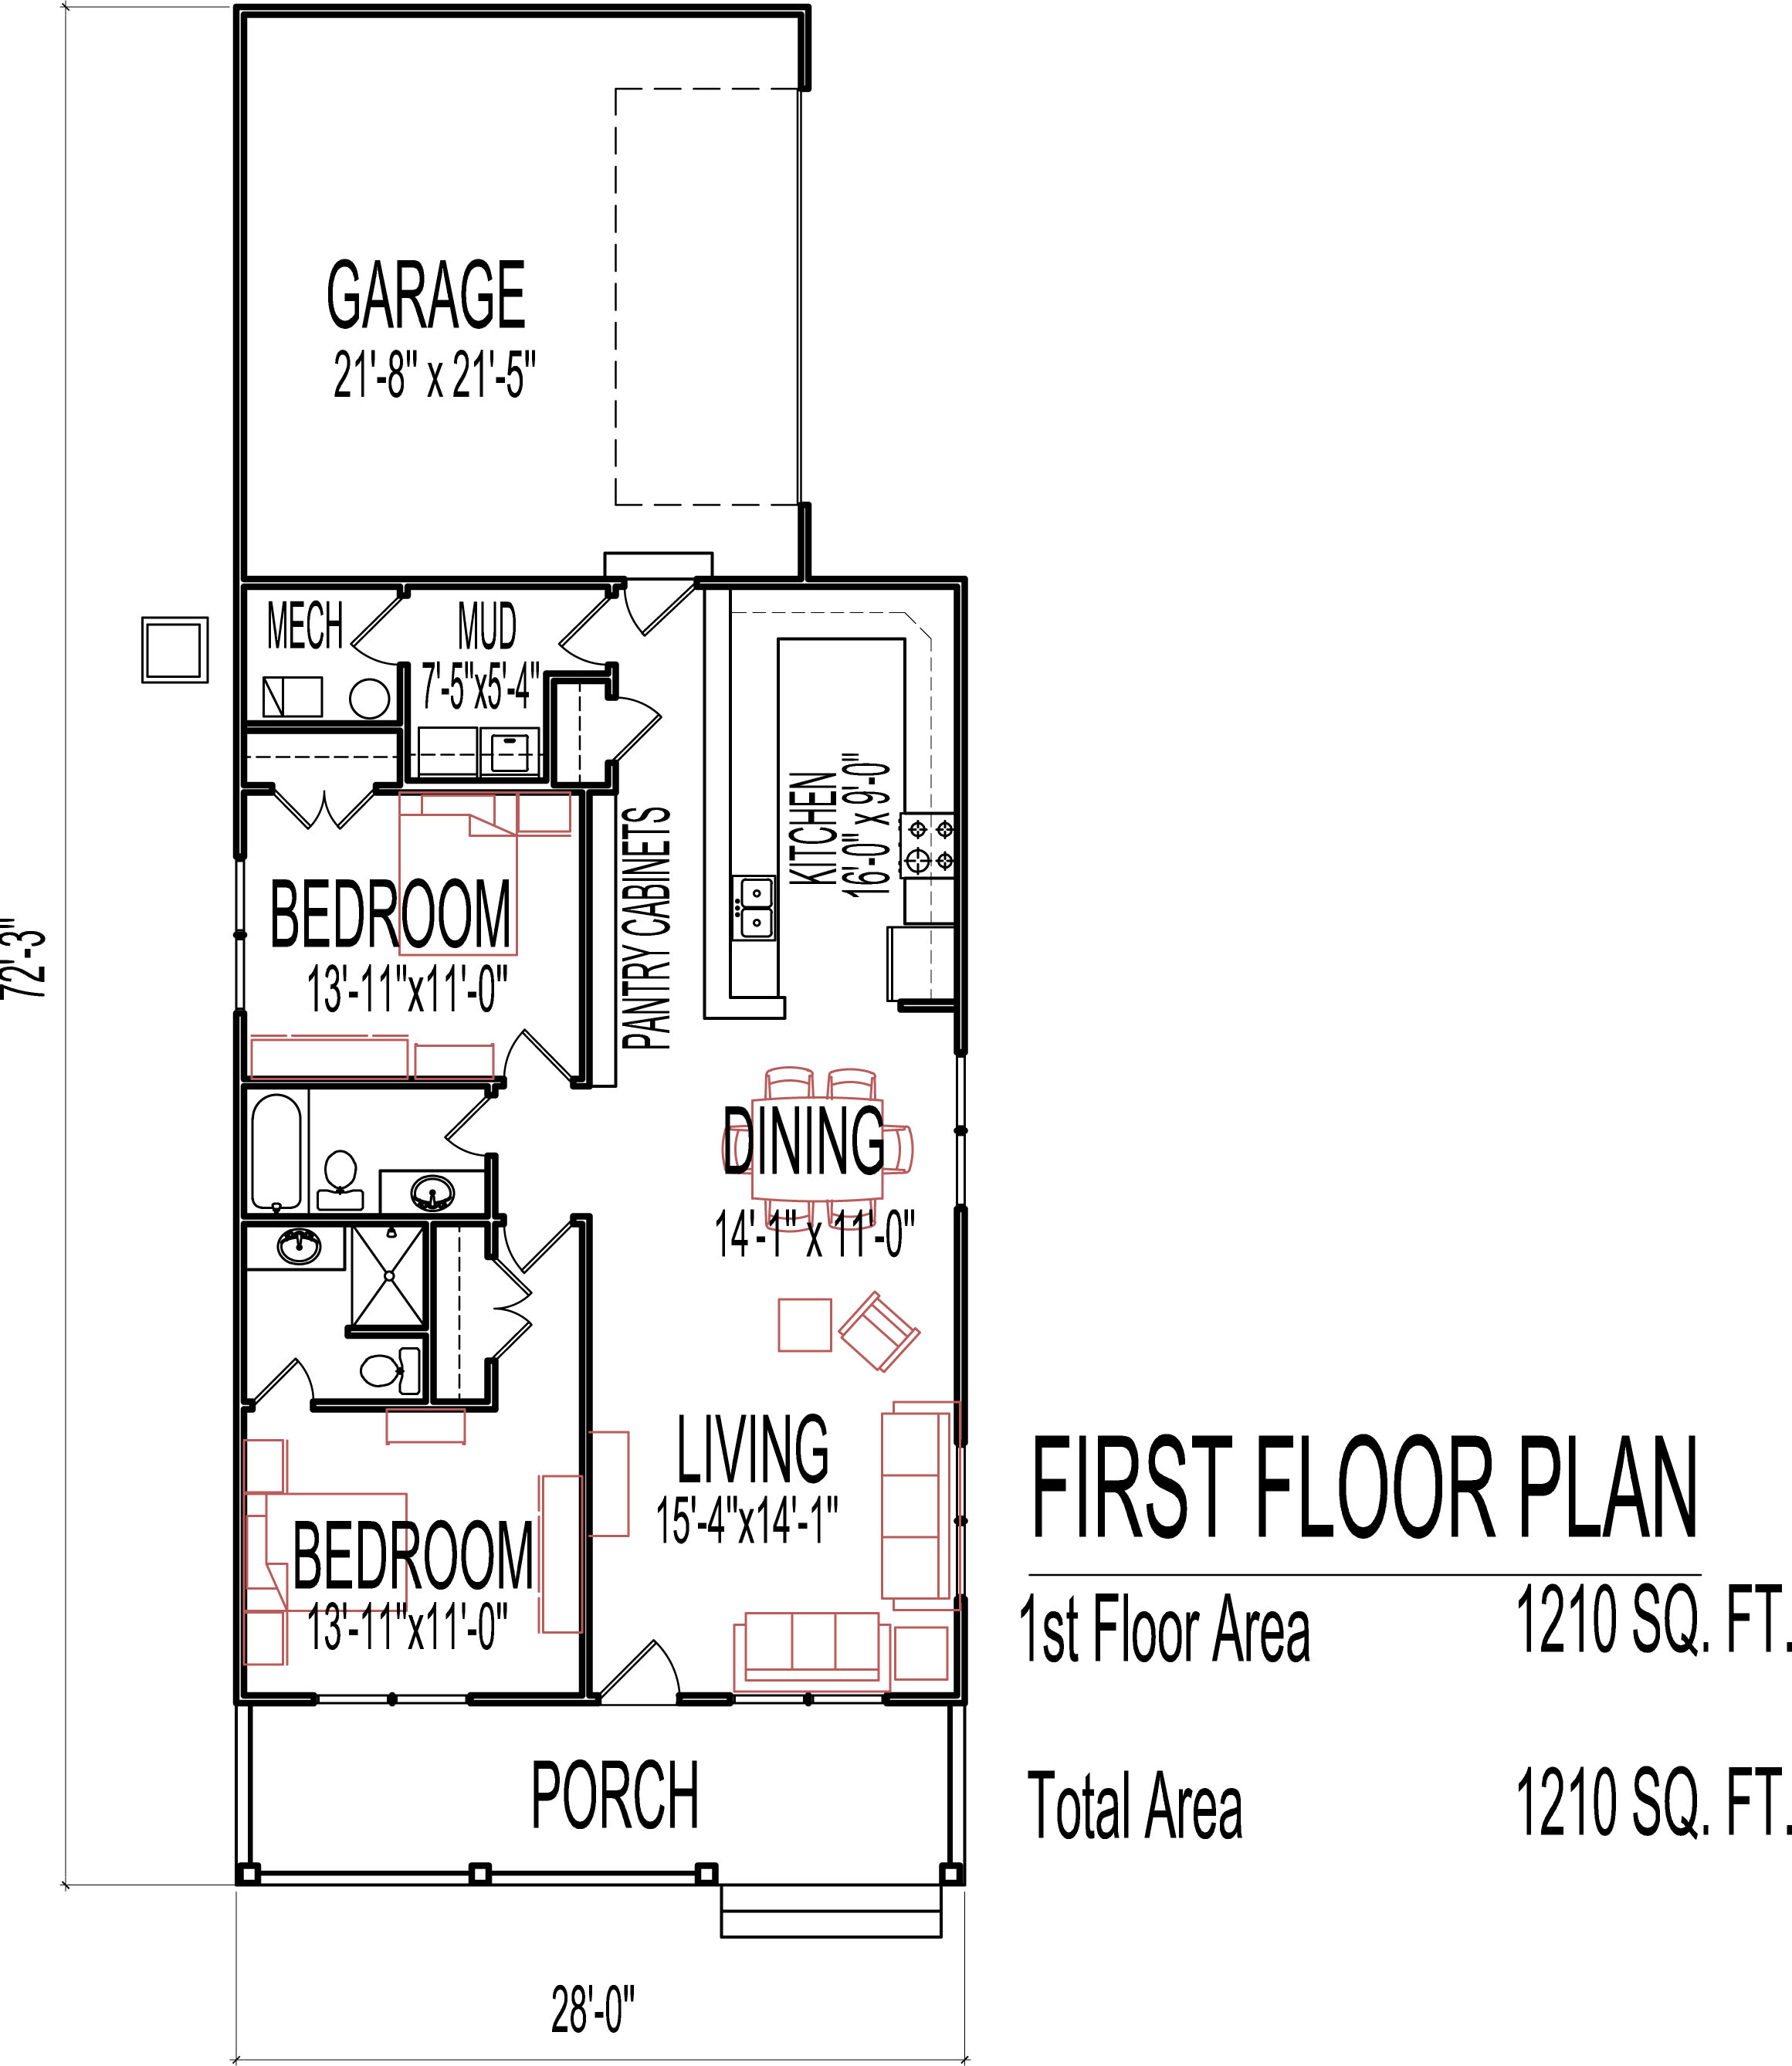 Small Two Bedroom House Plans Low Cost 1200 Sq Ft one Story – Simple 2 Story House Floor Plans